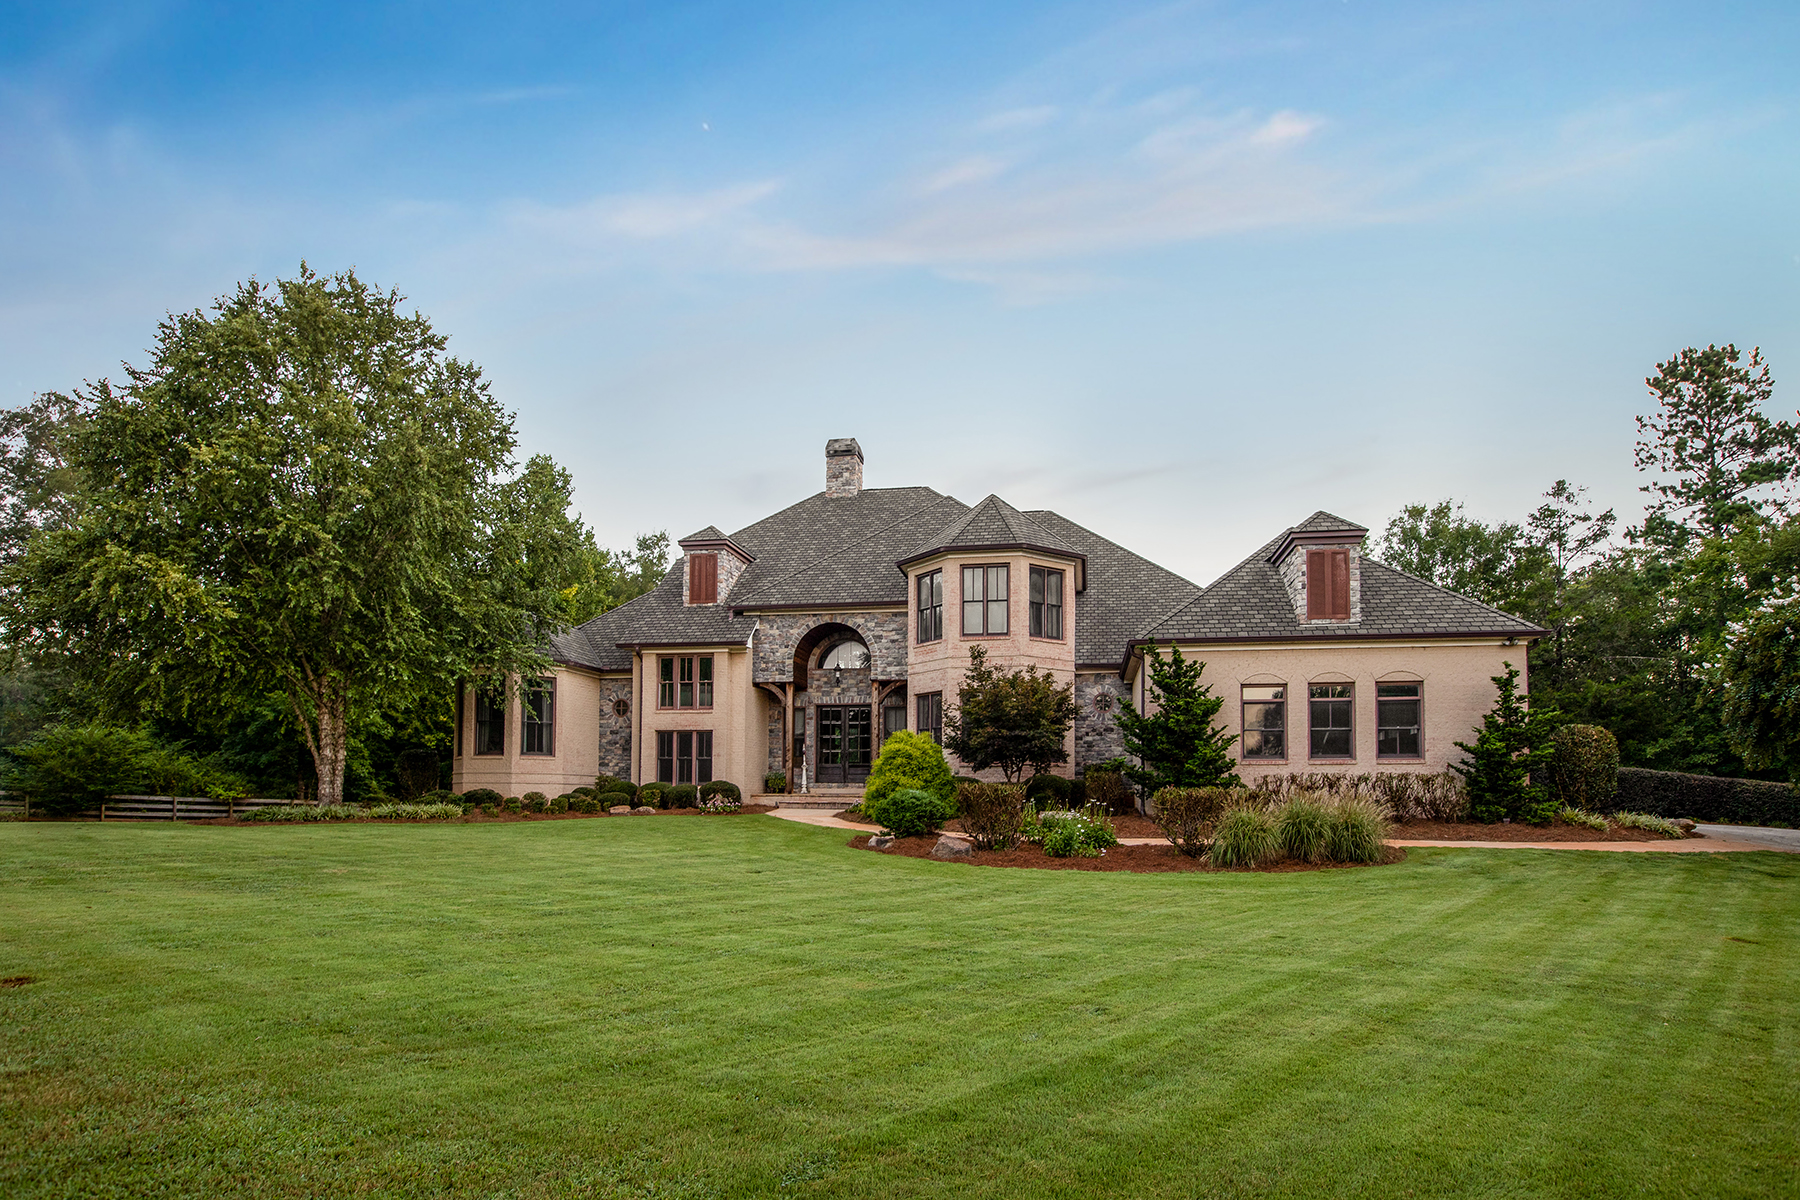 Частный односемейный дом для того Продажа на European-Style Brick and Stone Manor Situated Amid 71 Acres in Jackson Georgia 179 McIntosh Cir Jackson, Джорджия 30233 Соединенные Штаты